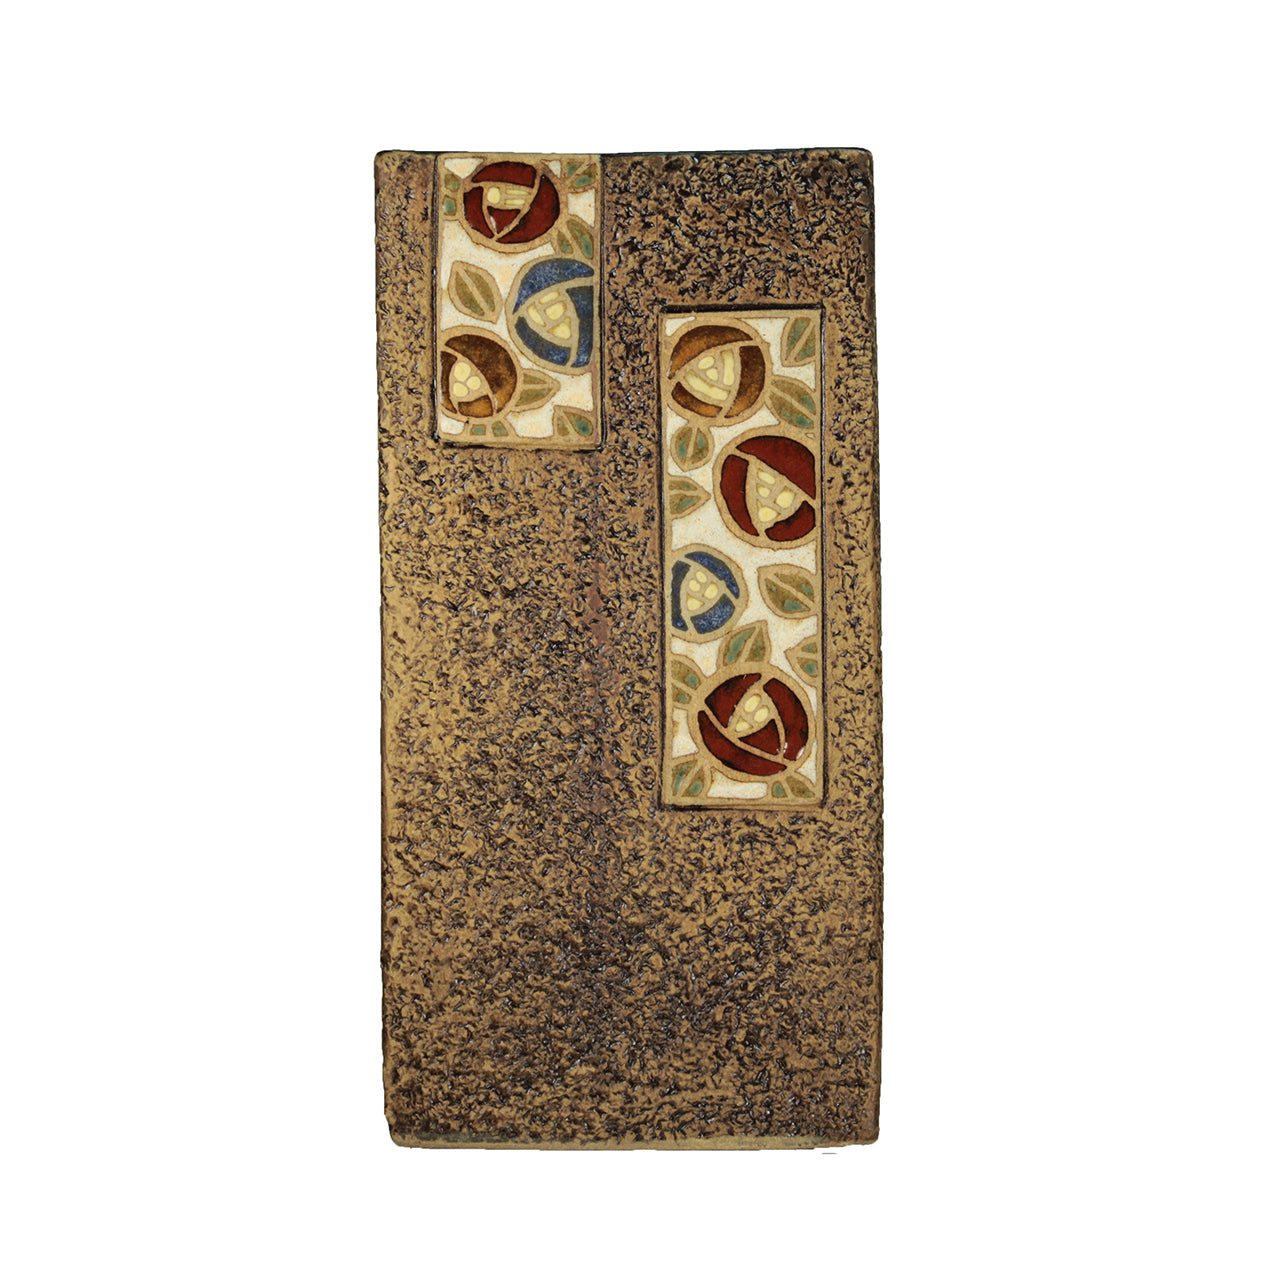 OOAKForHome Khaki Rectangular Vase - One of a Kind for Home